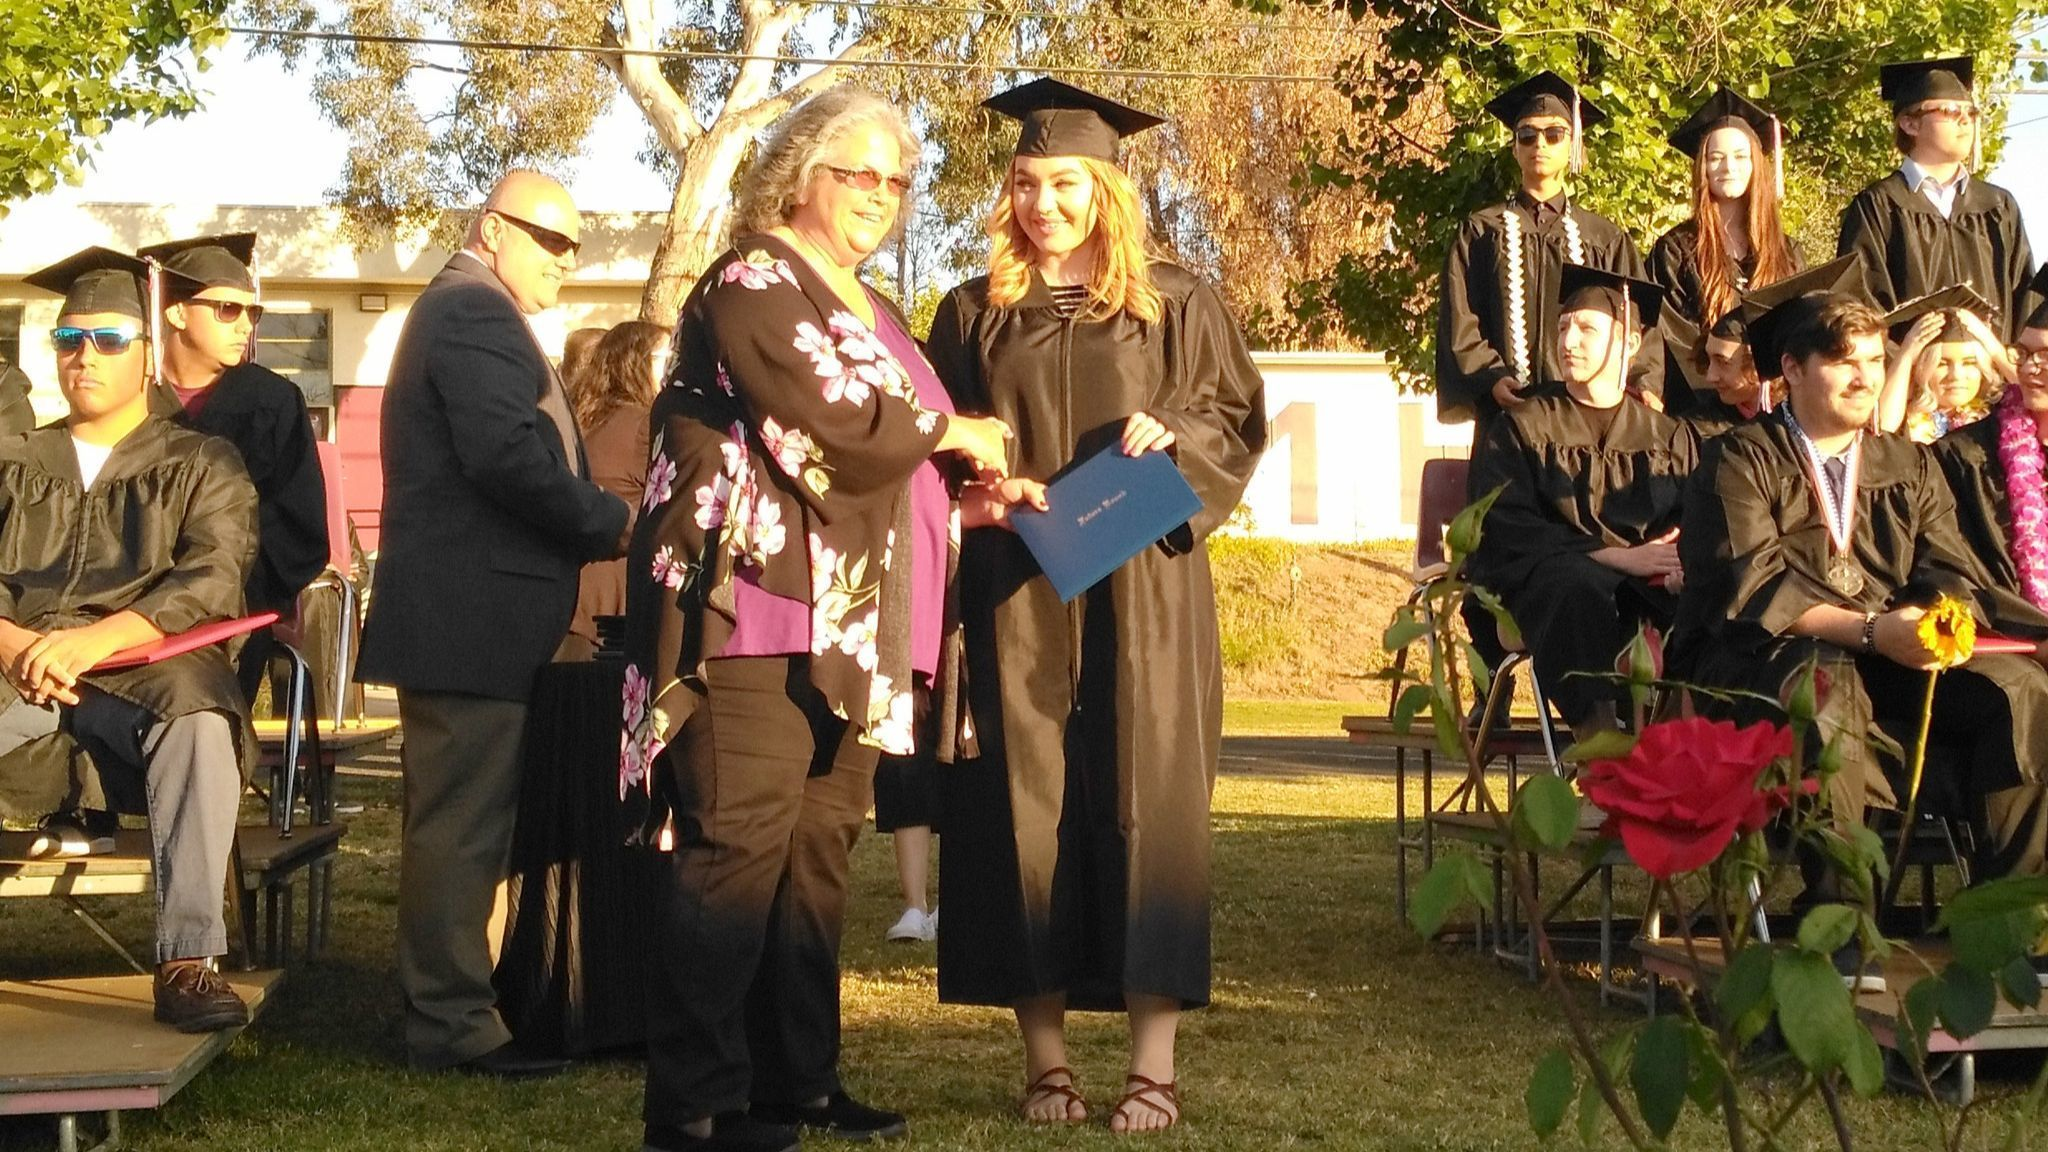 Ramona Unified School District Trustee Kim Lasley presents a diploma to Kailey Hall, a Future Bound Independent Study Program graduate.